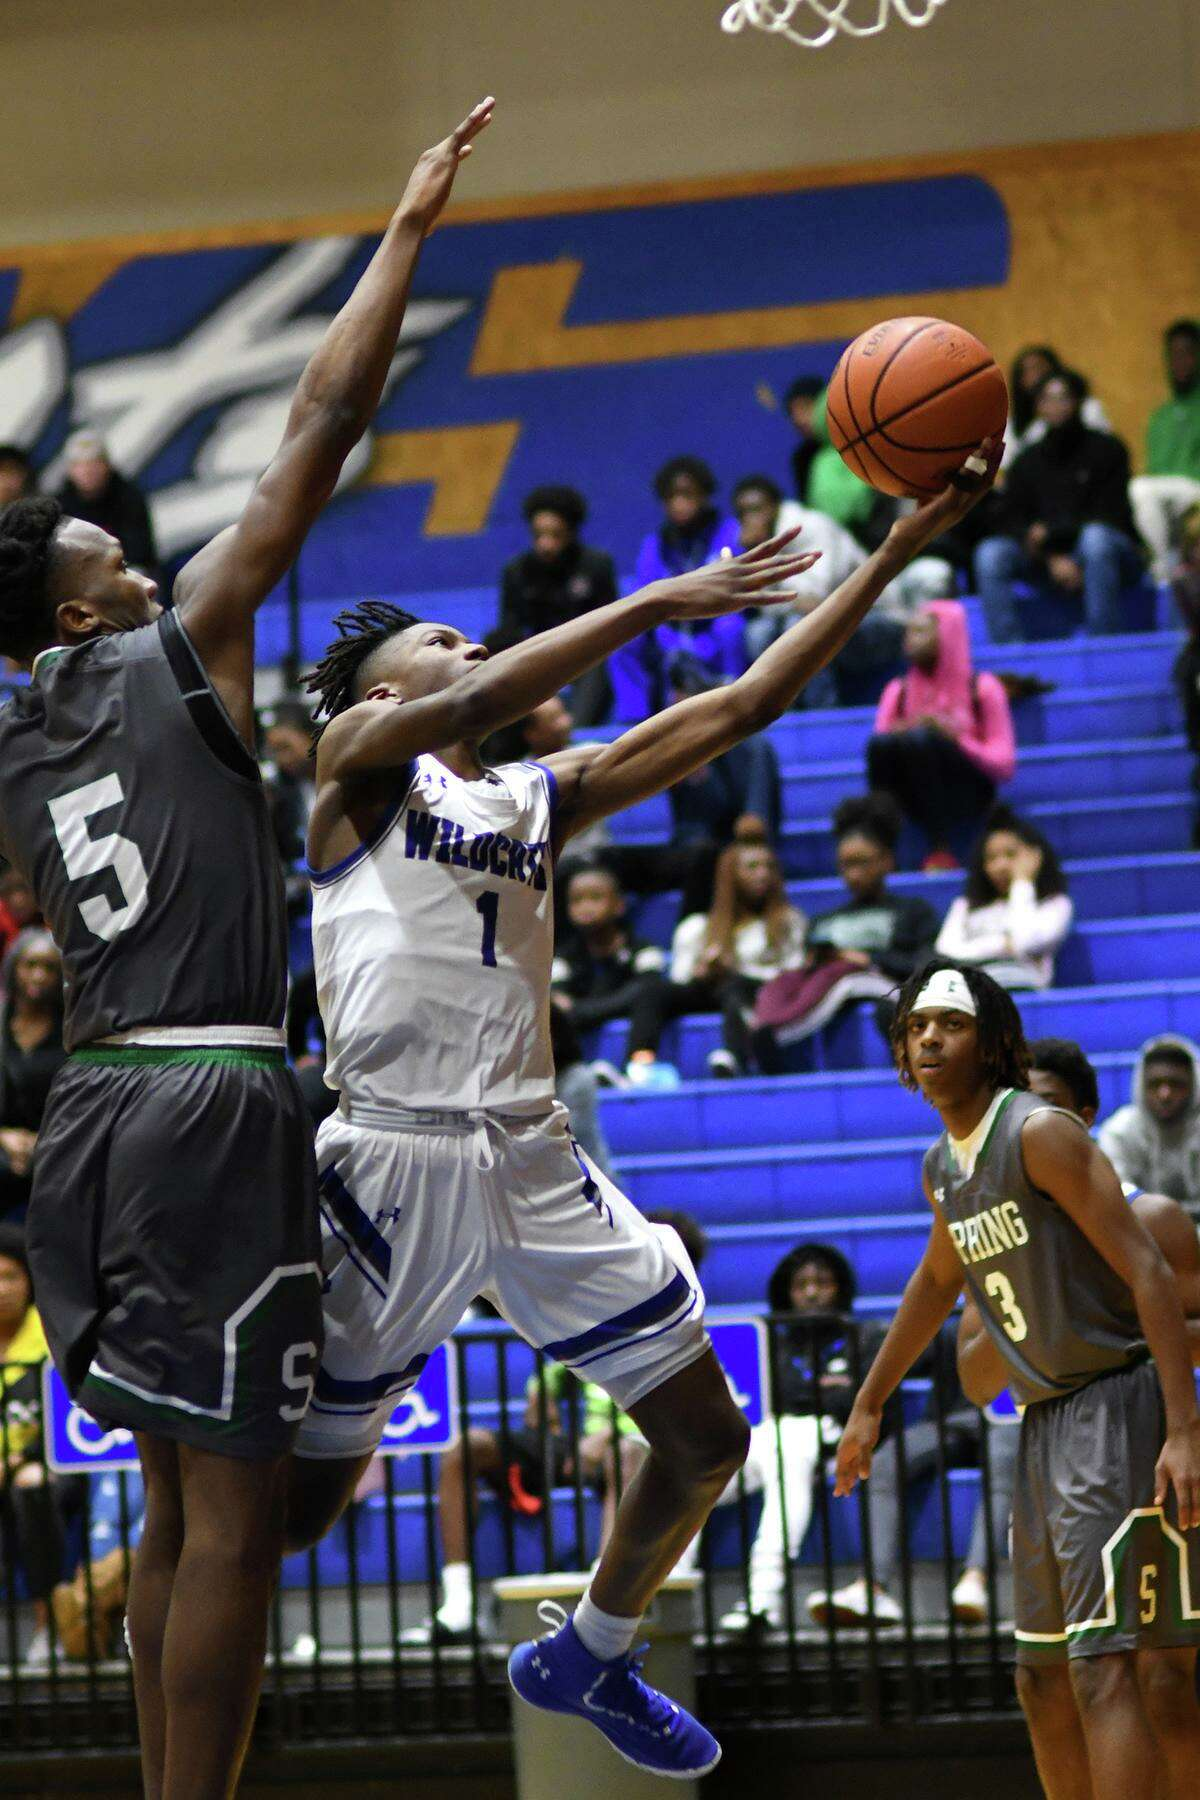 Following losses by Westfield and Benjamin Davis in the UIL boys basketball tournament, the 14-6A coaches have announced the students earning All-District honors for the 2020-2021 season. Dekaney's Adrian Body II (right) was named Defensive Player of the Year.